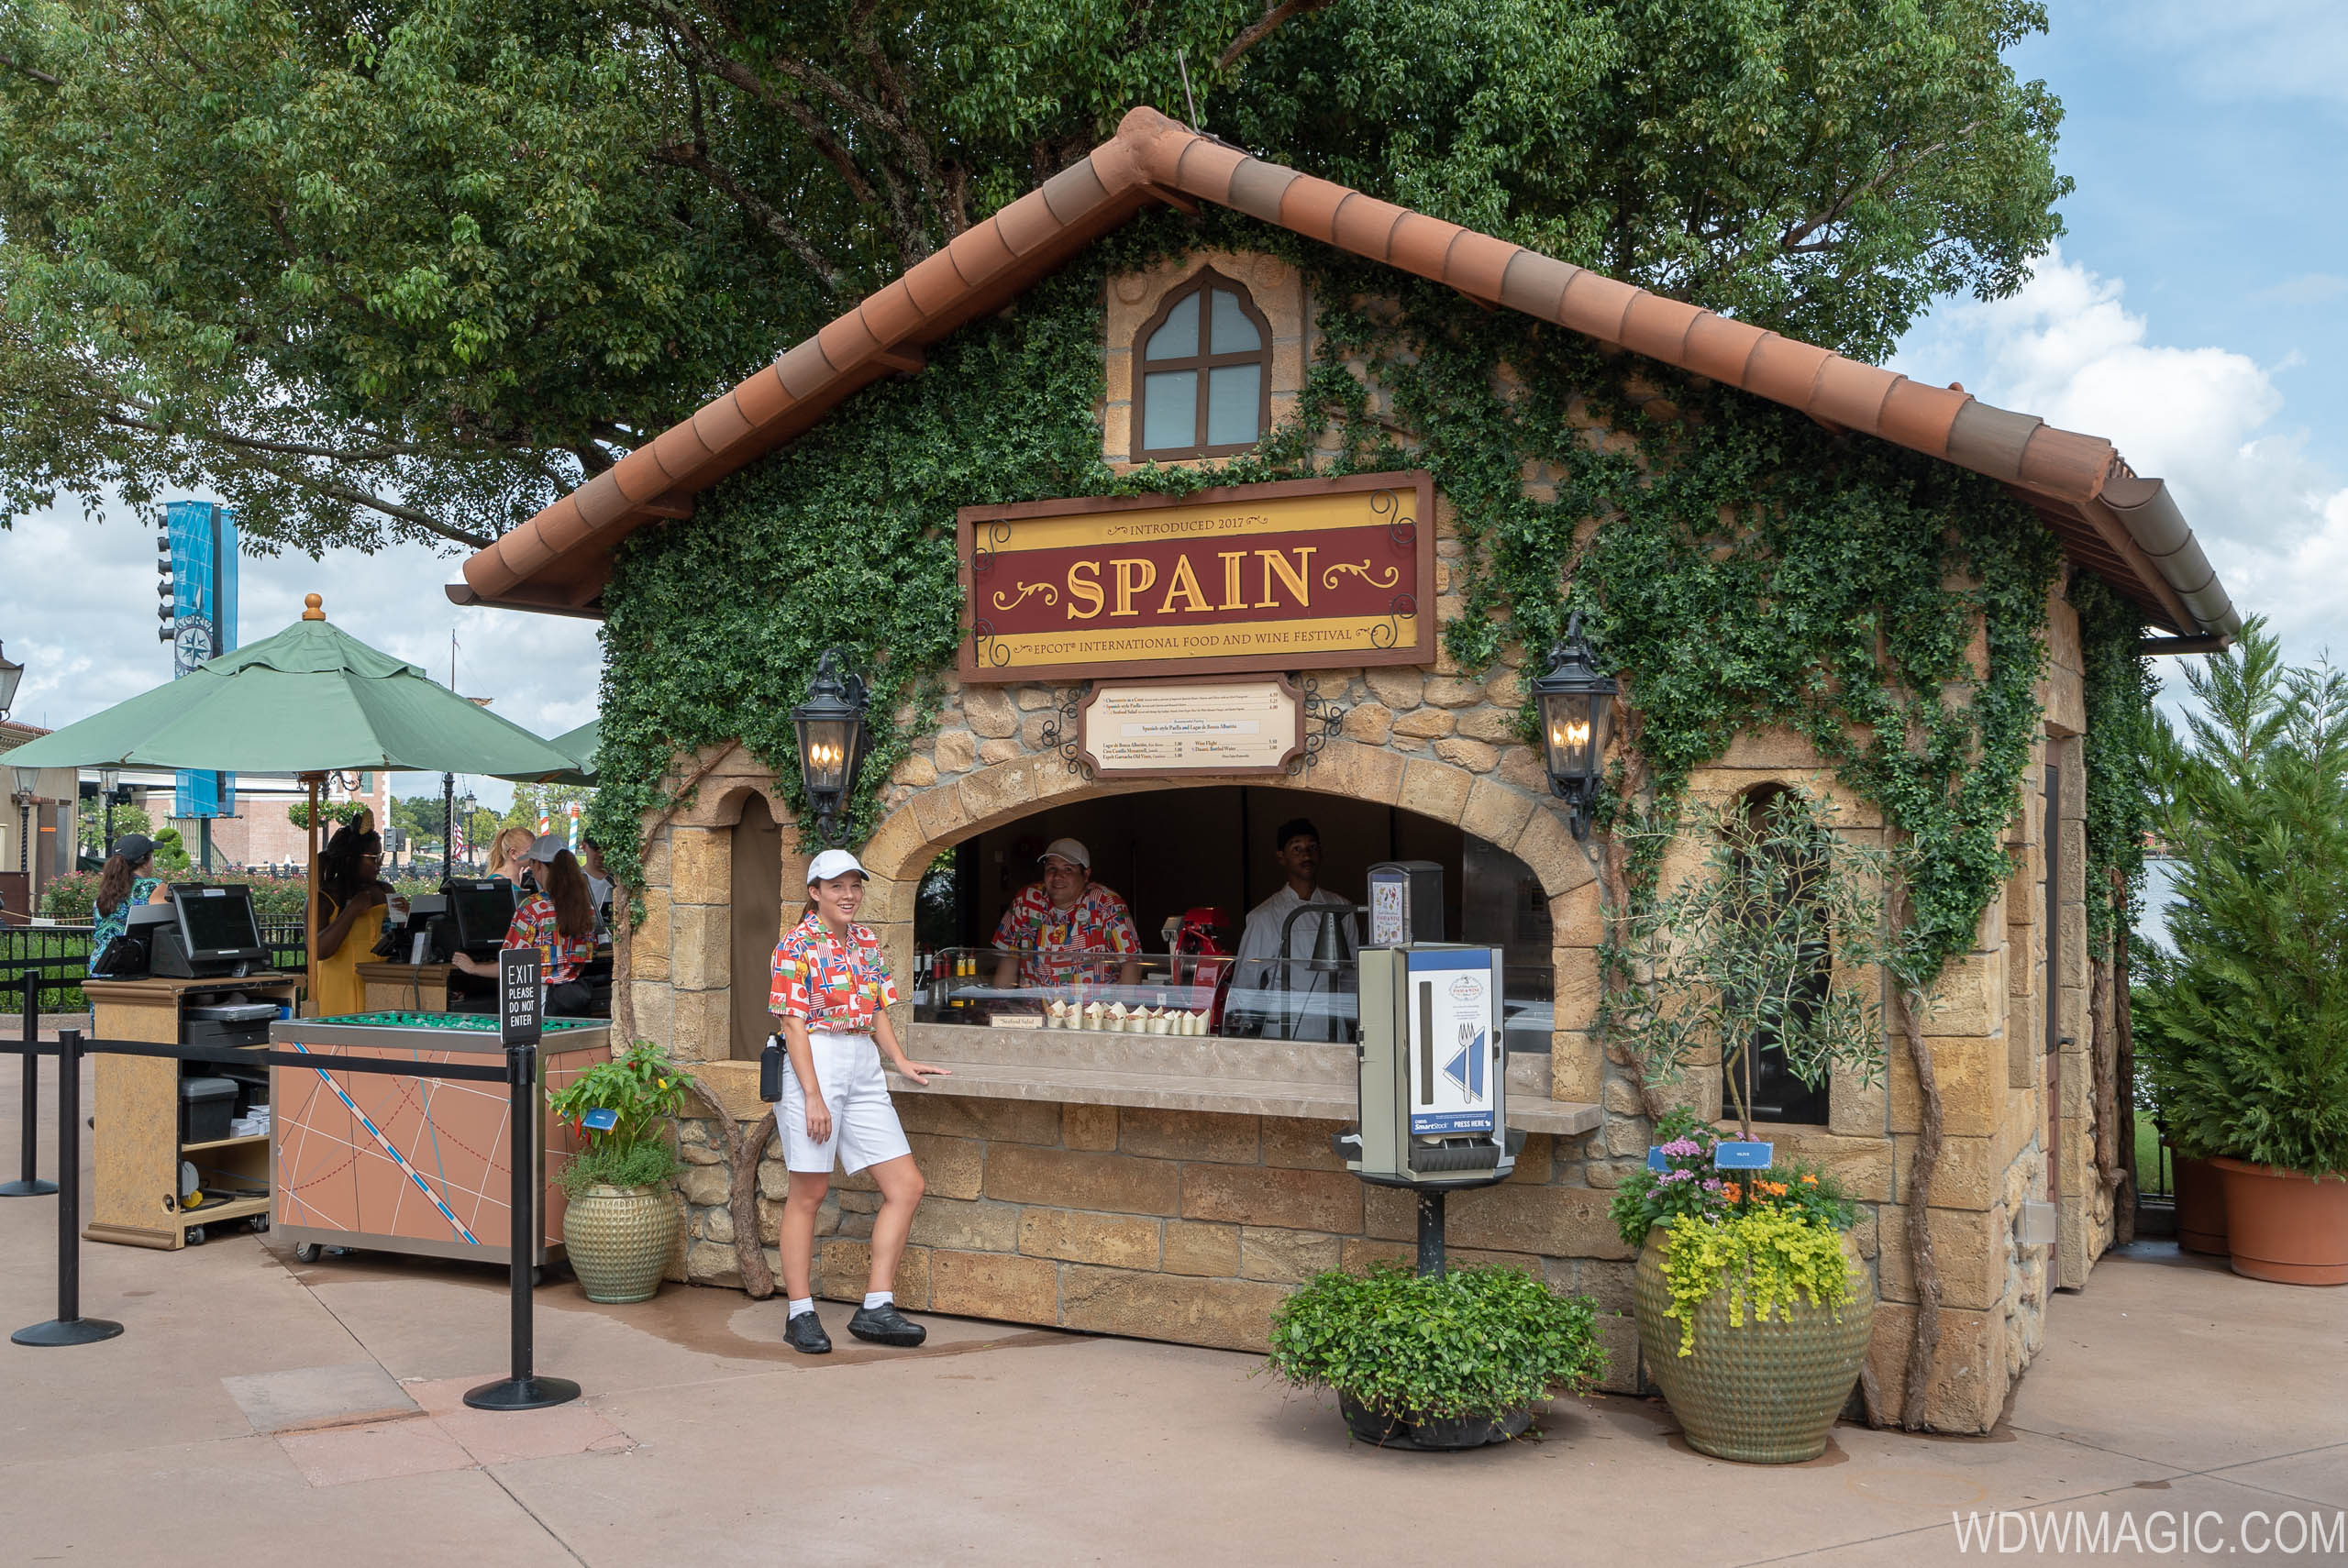 Spain at the Epcot Food and Wine Festival